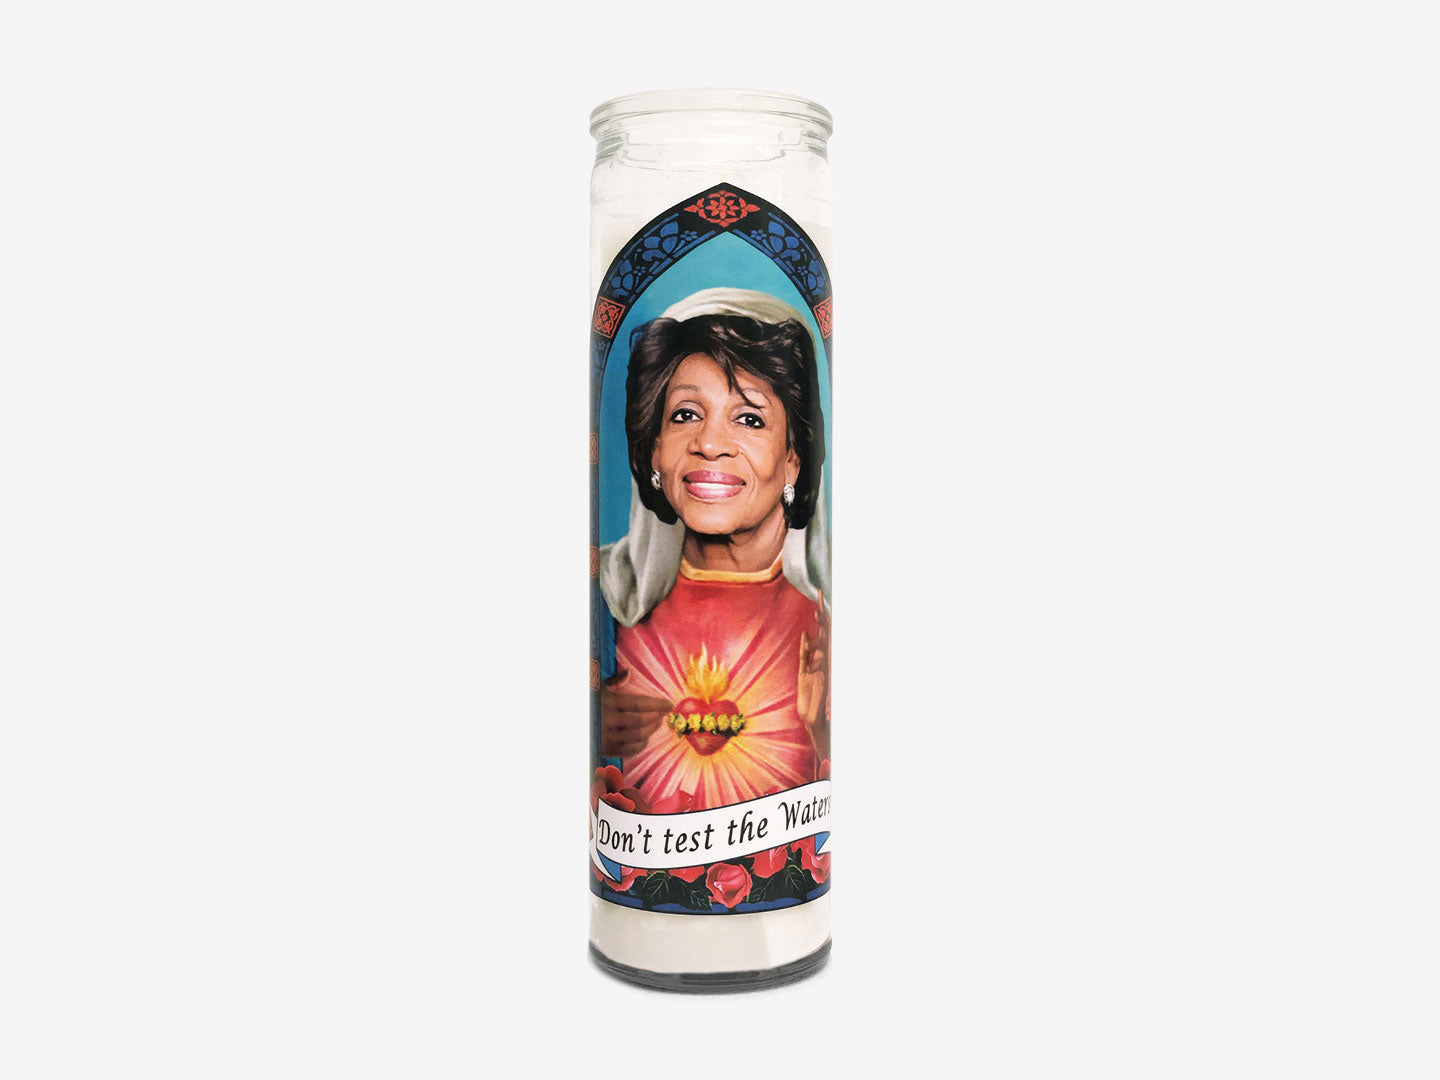 Prayer Candle Saint Maxine Waters Maxine Waters